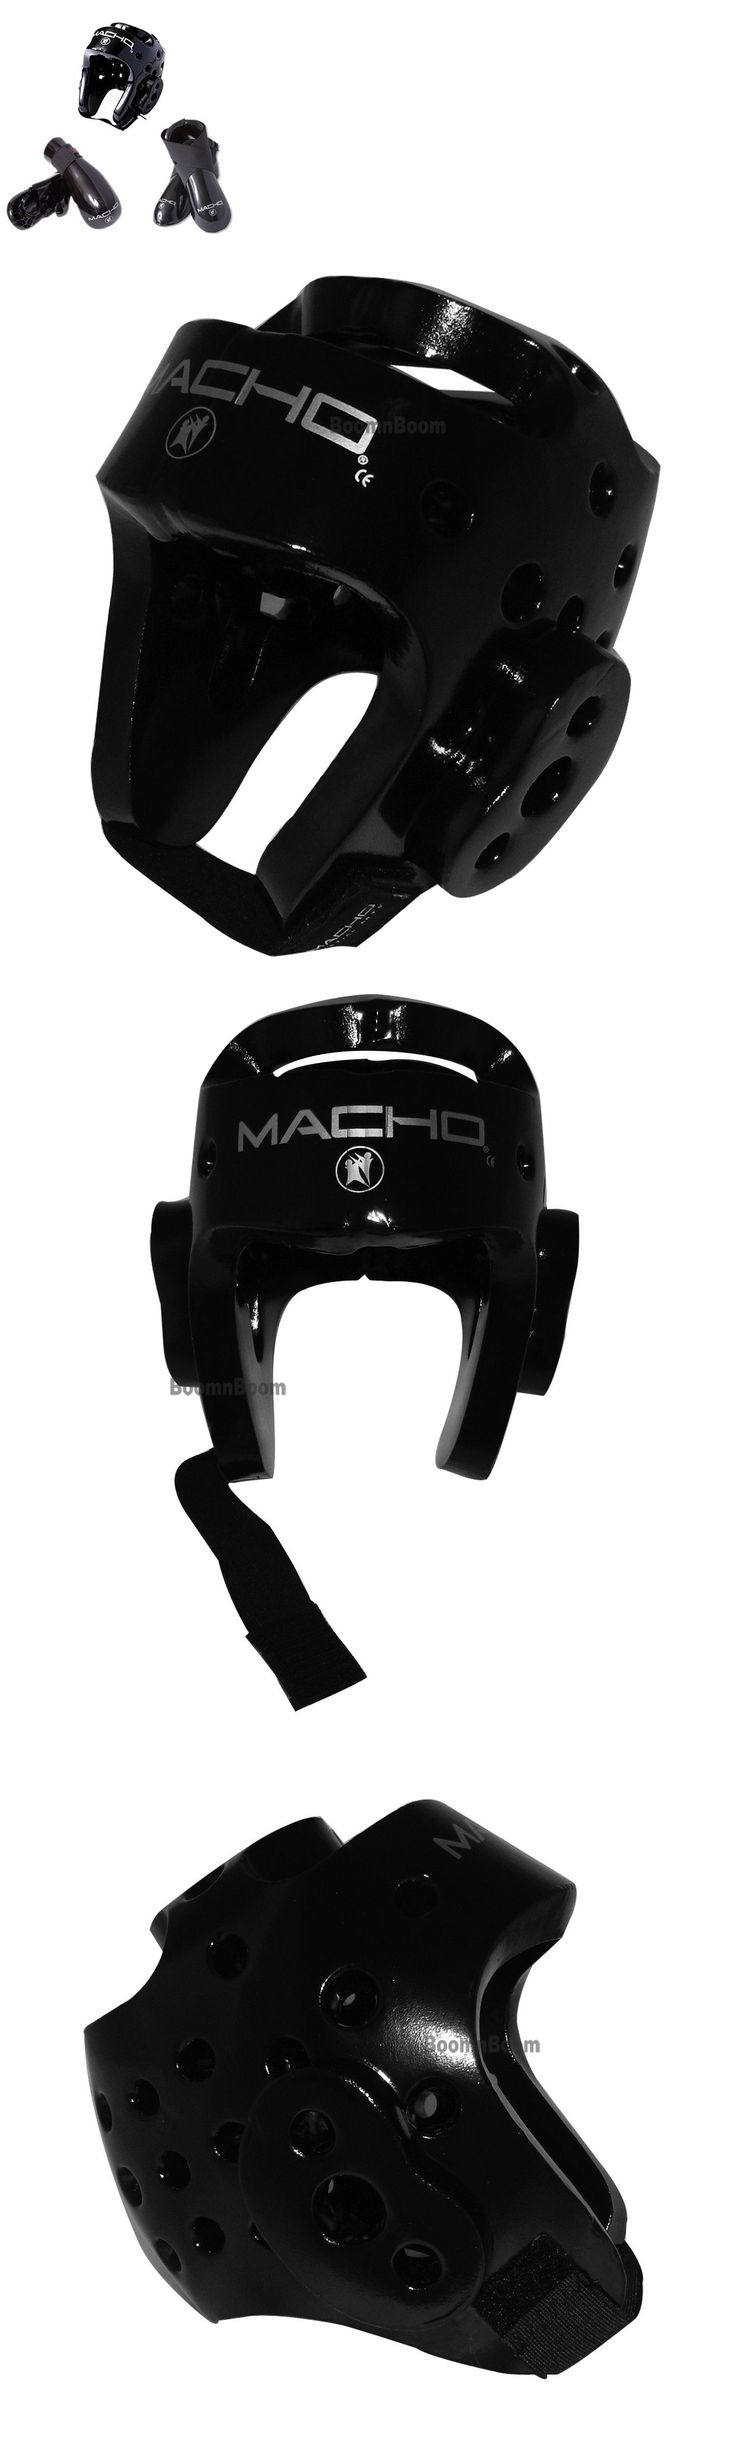 Head Gear 179780: New Macho Dyna Taekwondo,Karate Mma Headgear, Hand, Foot Sparring Gear Set-Black -> BUY IT NOW ONLY: $80.75 on eBay!